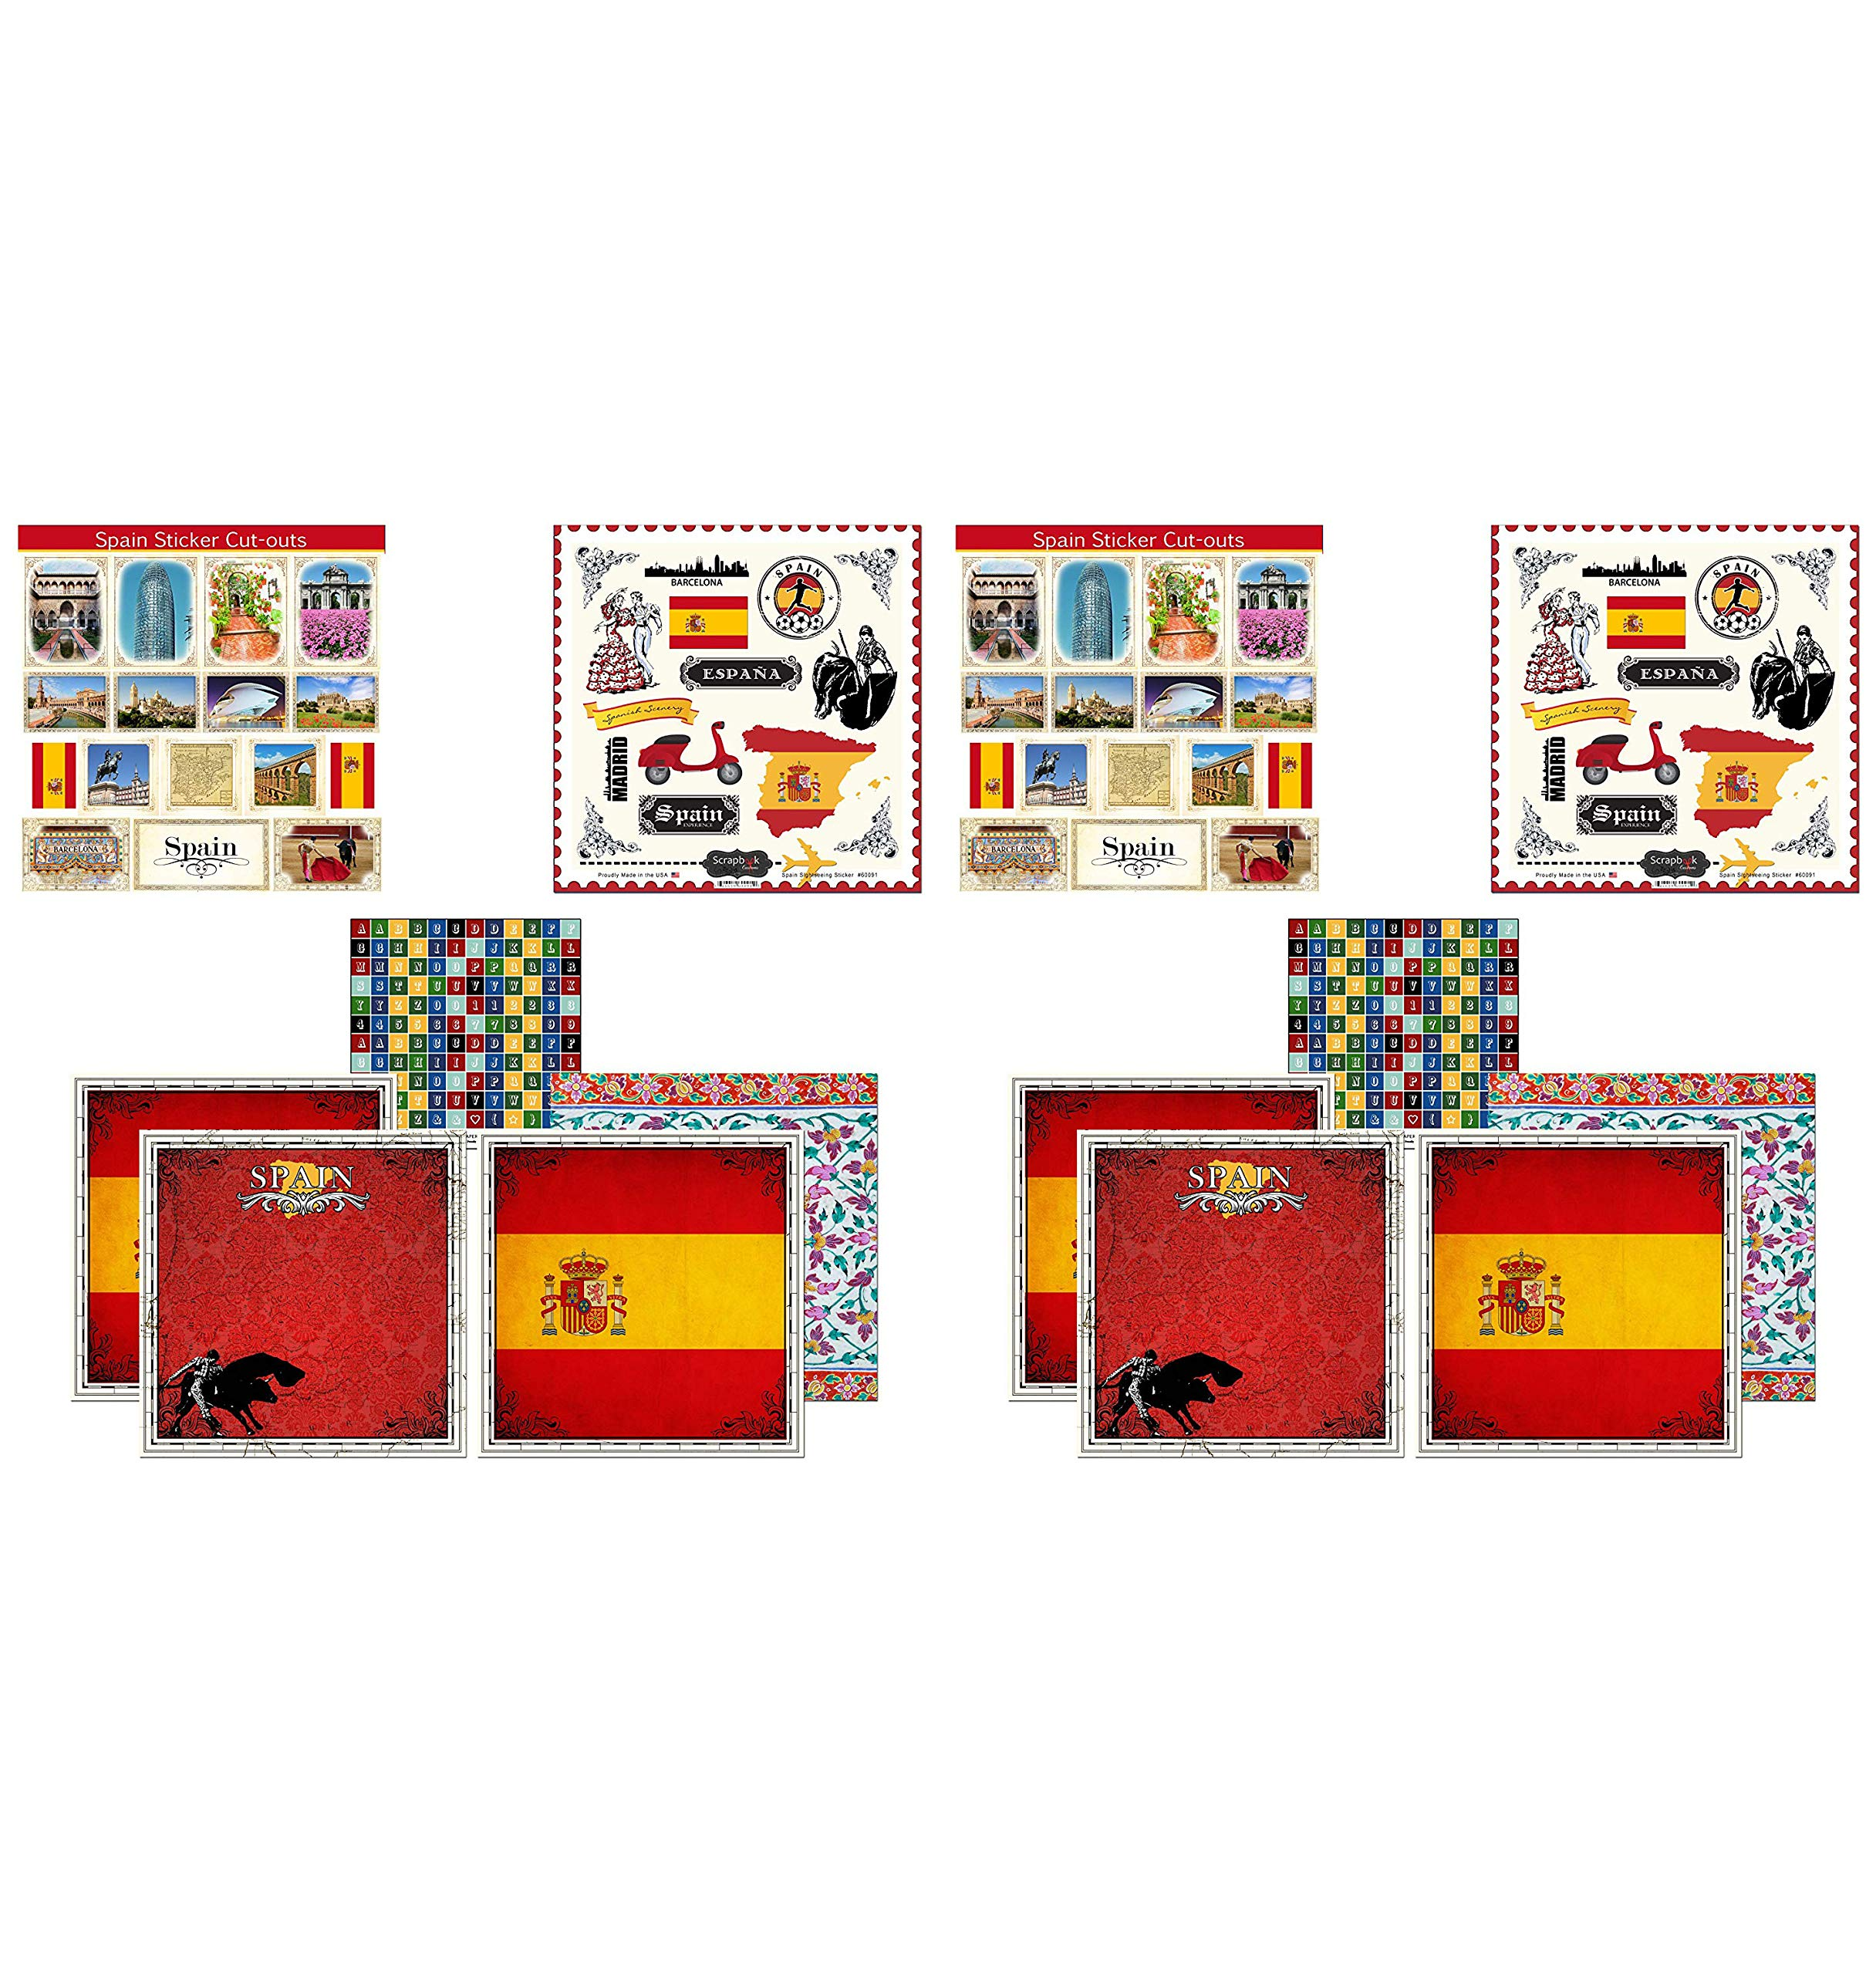 Scrapbook Customs Themed Paper and Stickers Scrapbook Kit, Spain Sightseeing (Twо Pаck)